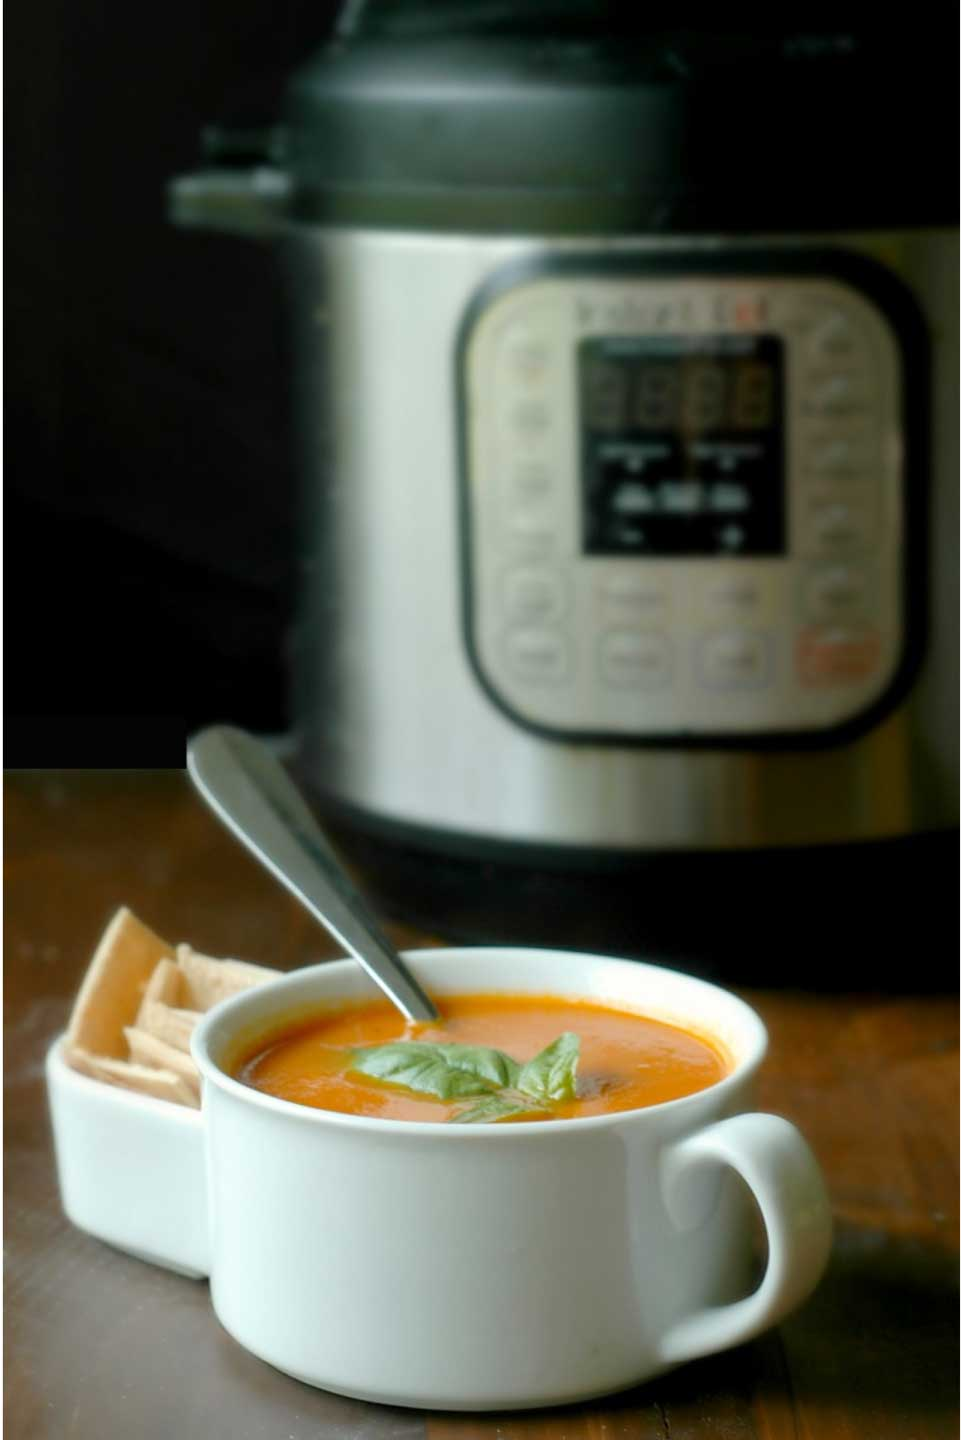 Like all the soup recipes on our list of pressure cooker faves, this Instant Pot Tomato Soup from Renee at Raising Generation Nourished is quick and easy … on the table in a flash!